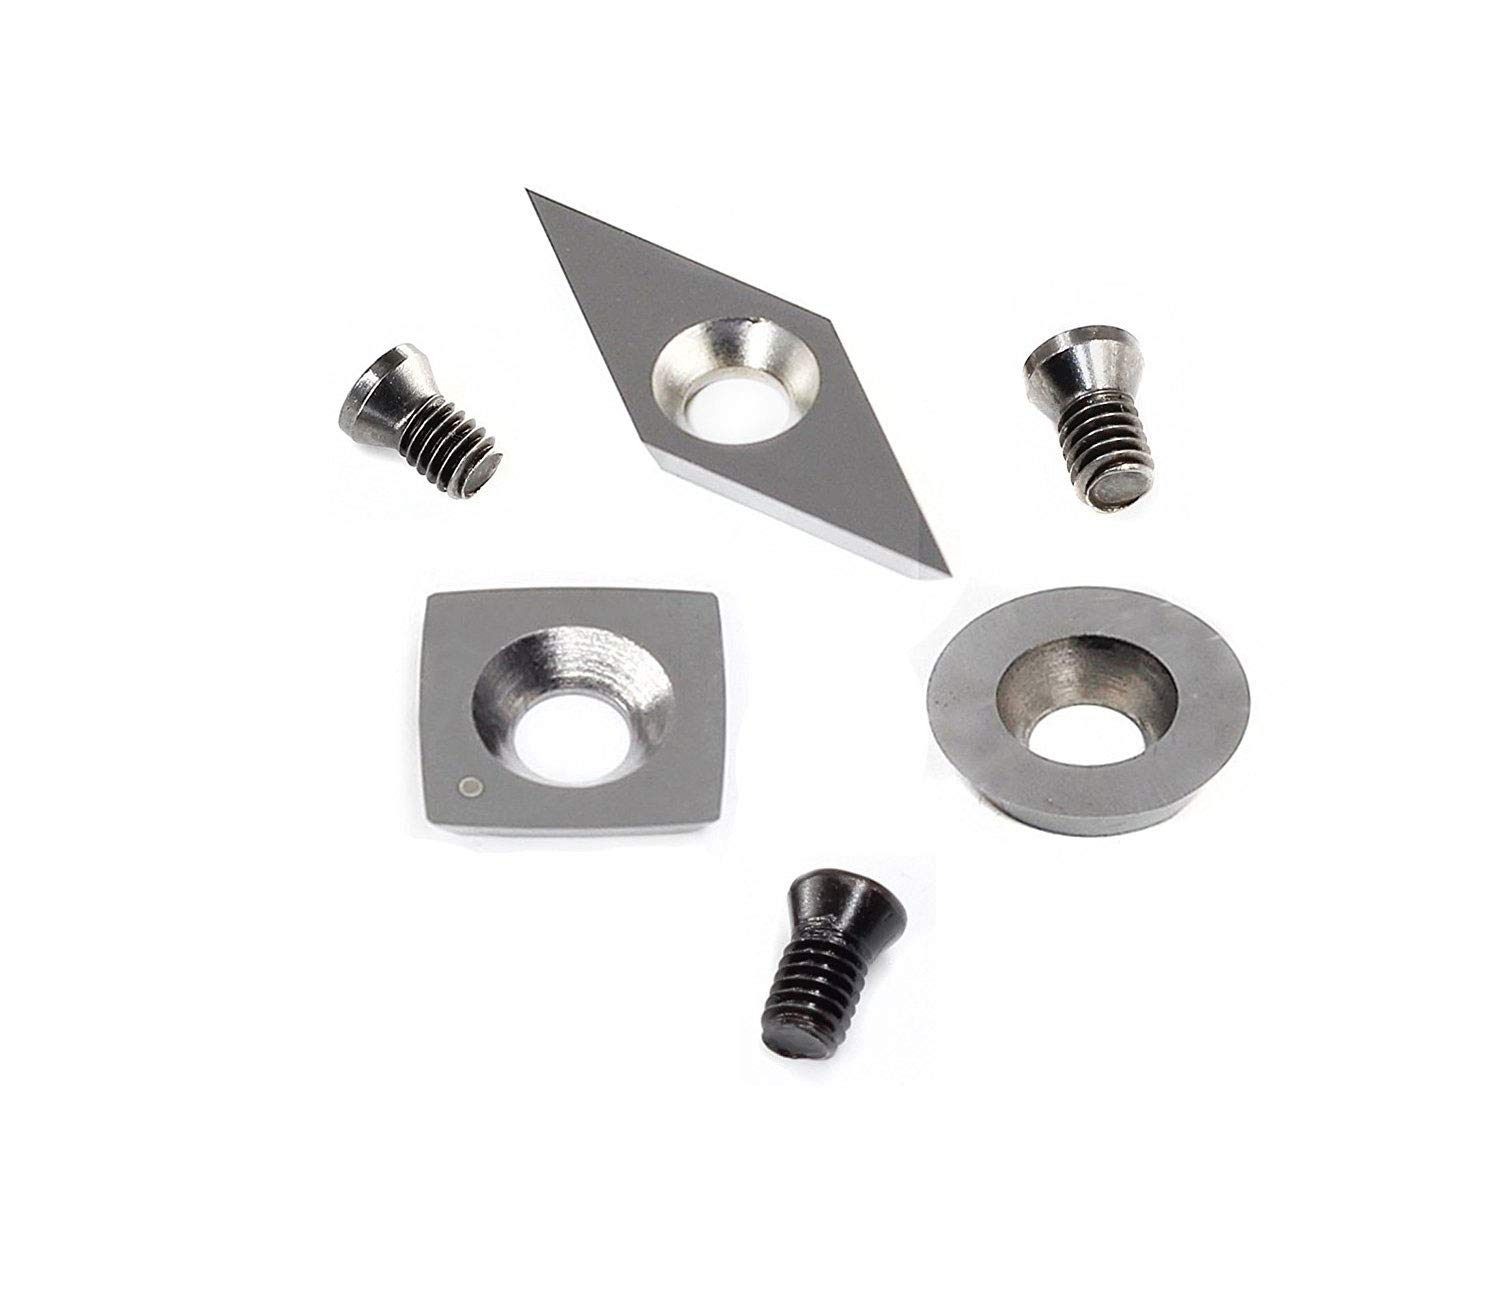 YUFUTOL 3pcs Tungsten Carbide Cutters Inserts Set for Wood Lathe Turning Tools(Include 11mm Square With Radius,12mm Round,28x10mm Diamond With sharp point),Supplied with Screws by YUFUTOL